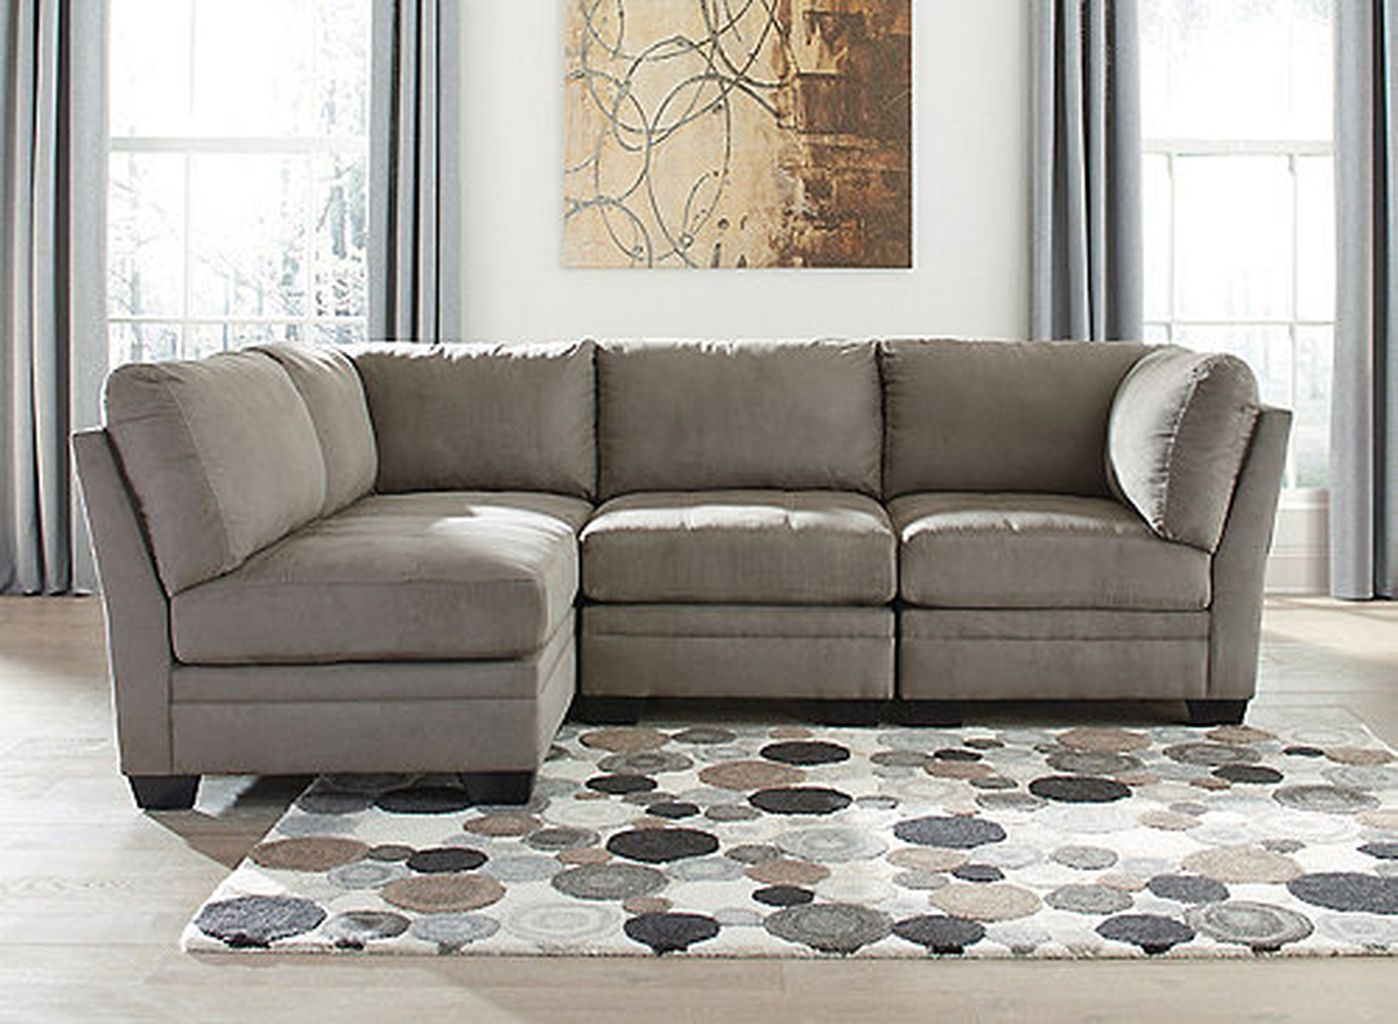 Comfortable Ashley Sectional Sofa Ideas For Living Room 48